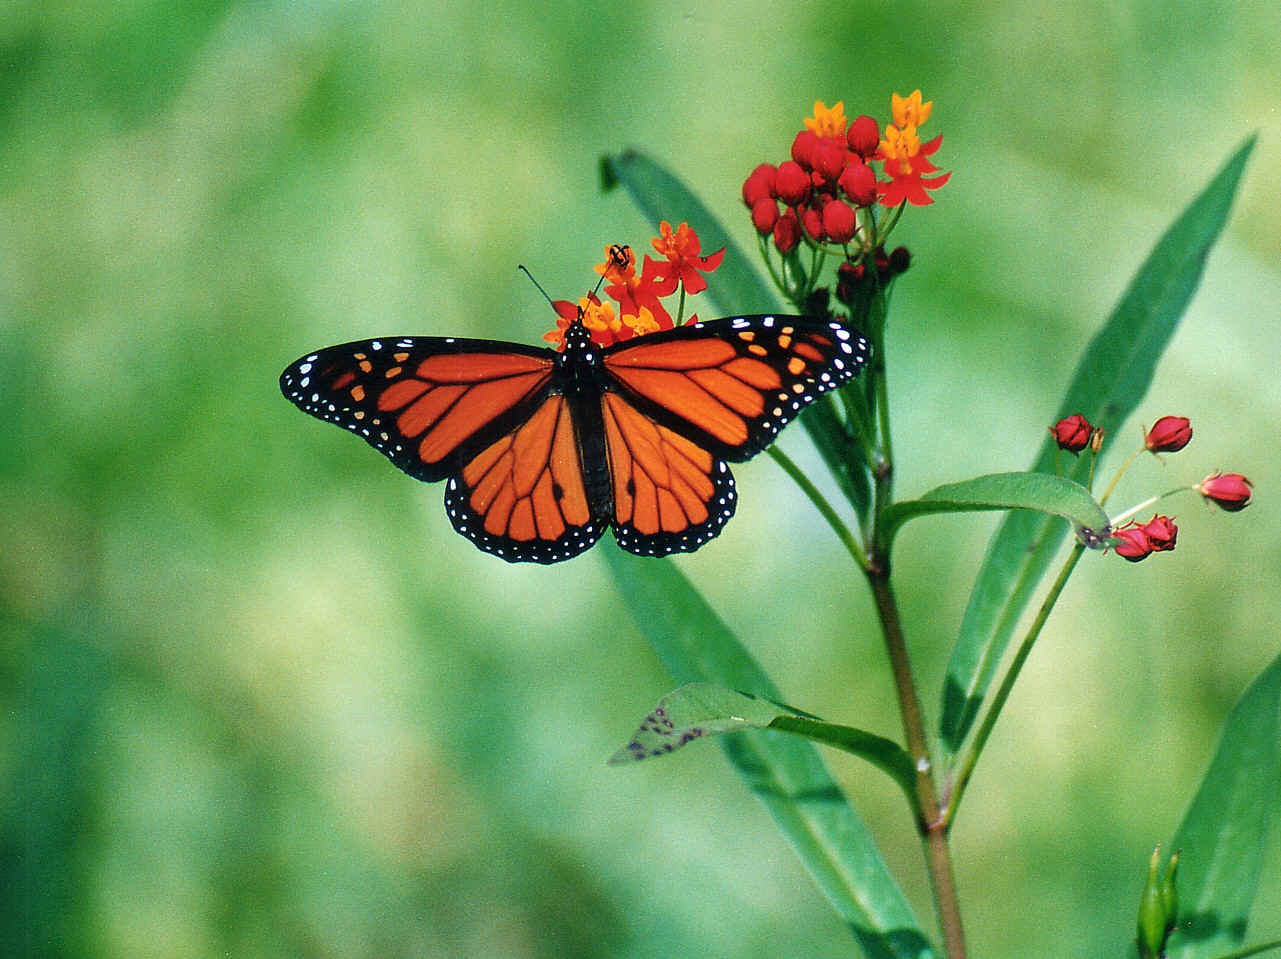 Butterflies Wallpapers Hd Download: Beautiful HD Butterfly Wallpapers